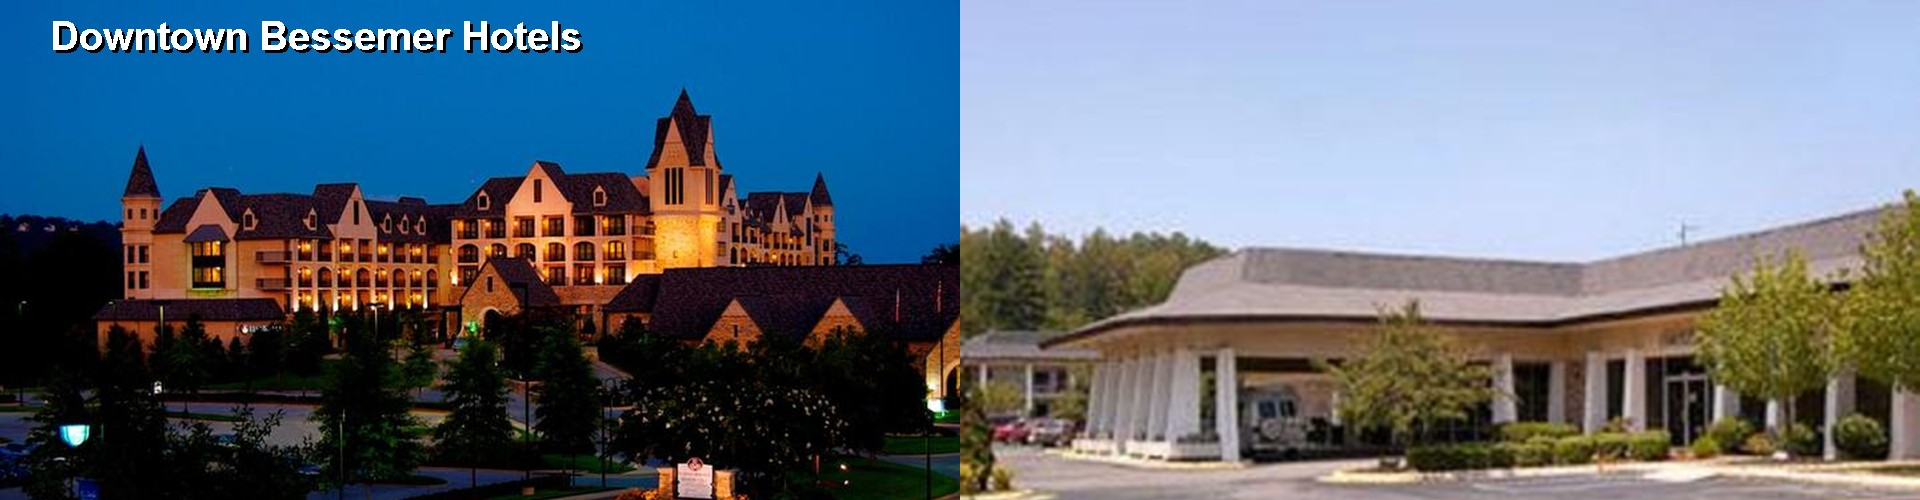 5 Best Hotels near Downtown Bessemer